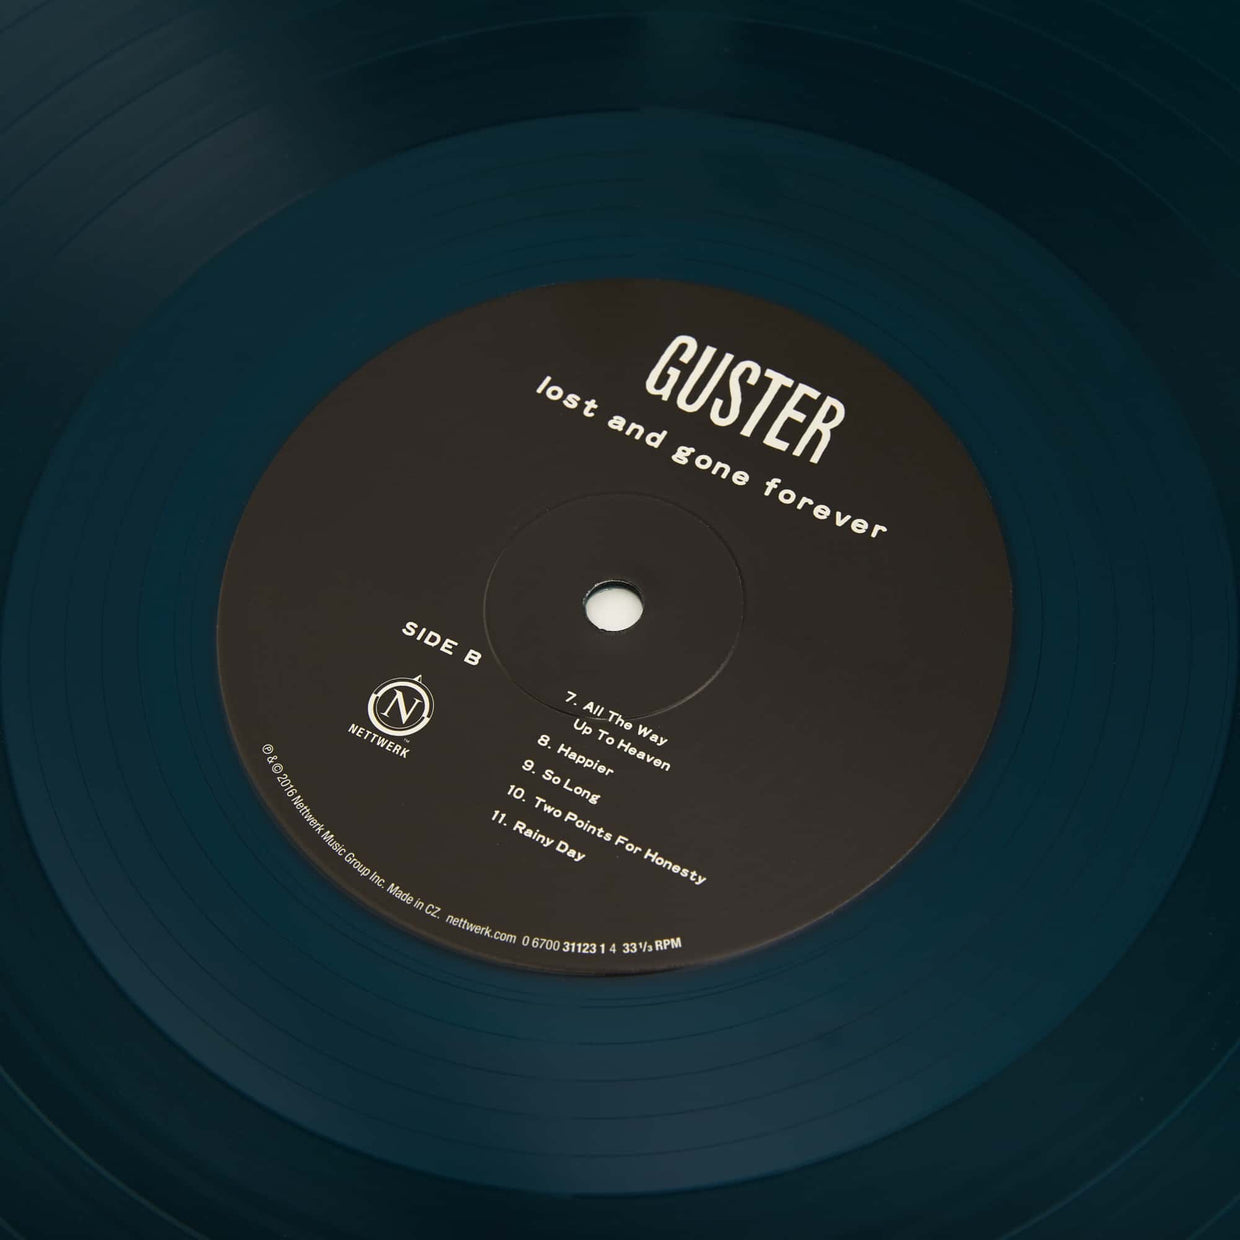 'Lost and Gone Forever' Vinyl LP - Translucent Rainy Day Blue